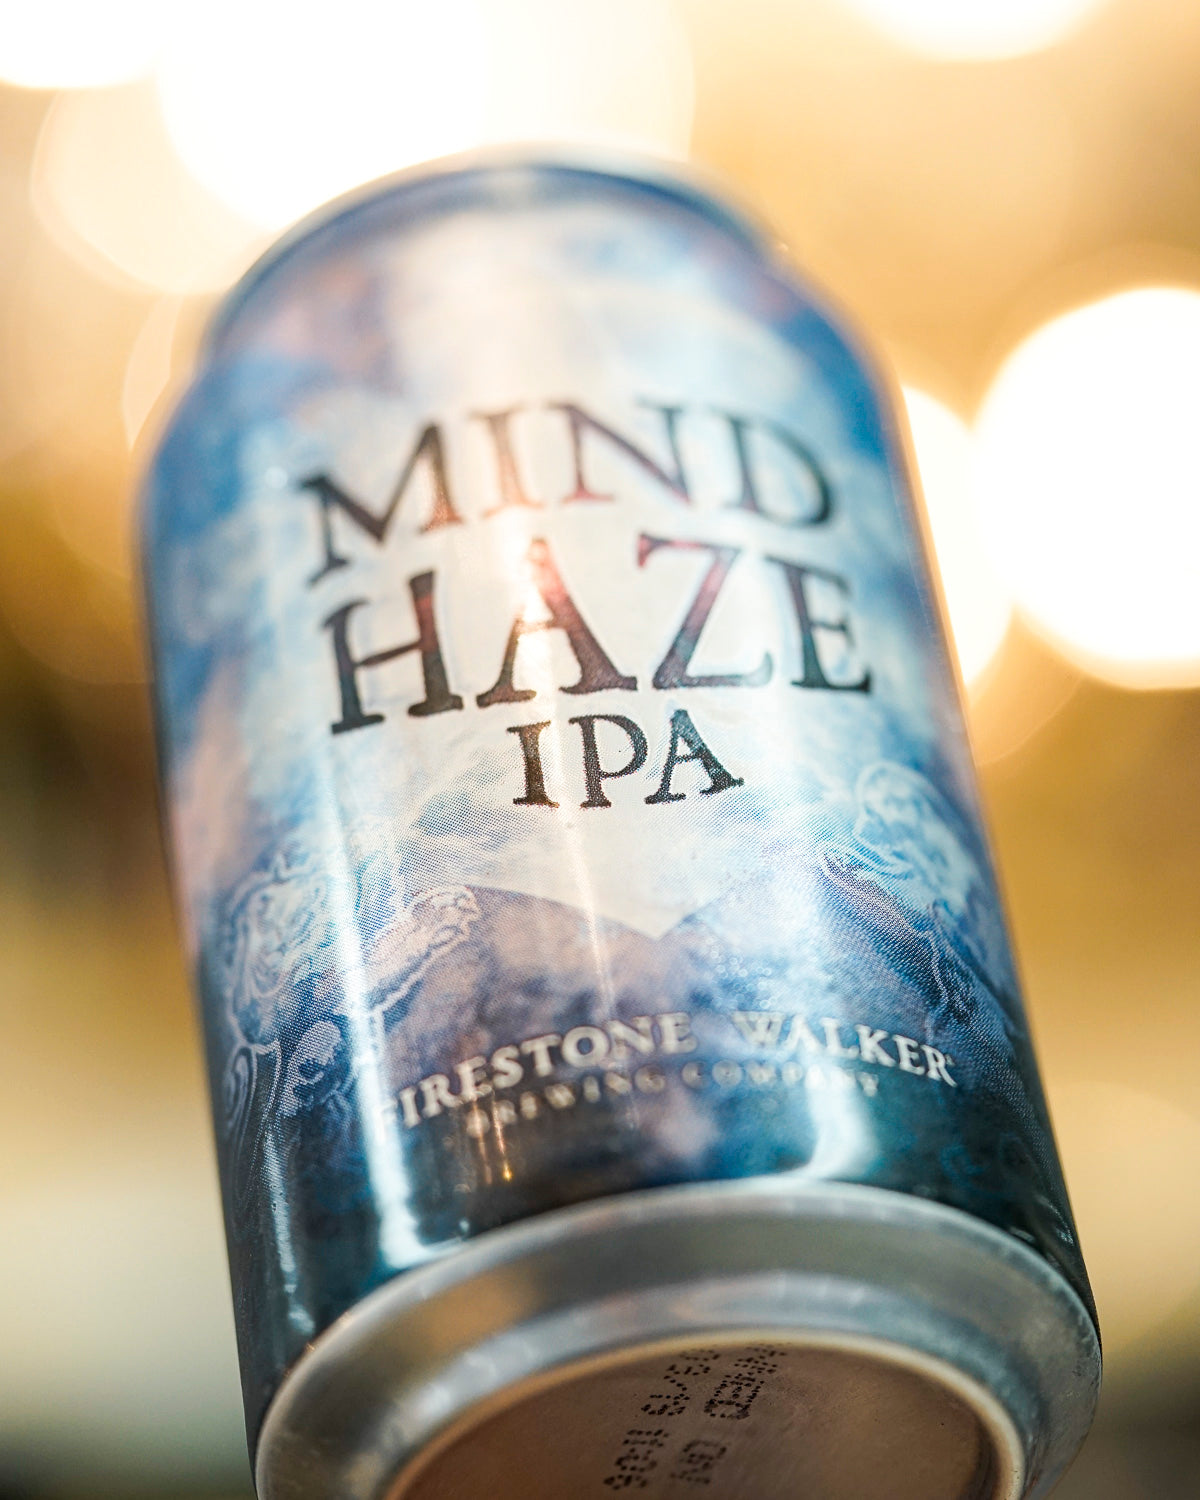 Firestone Walker Mind Haze IPA 355mL